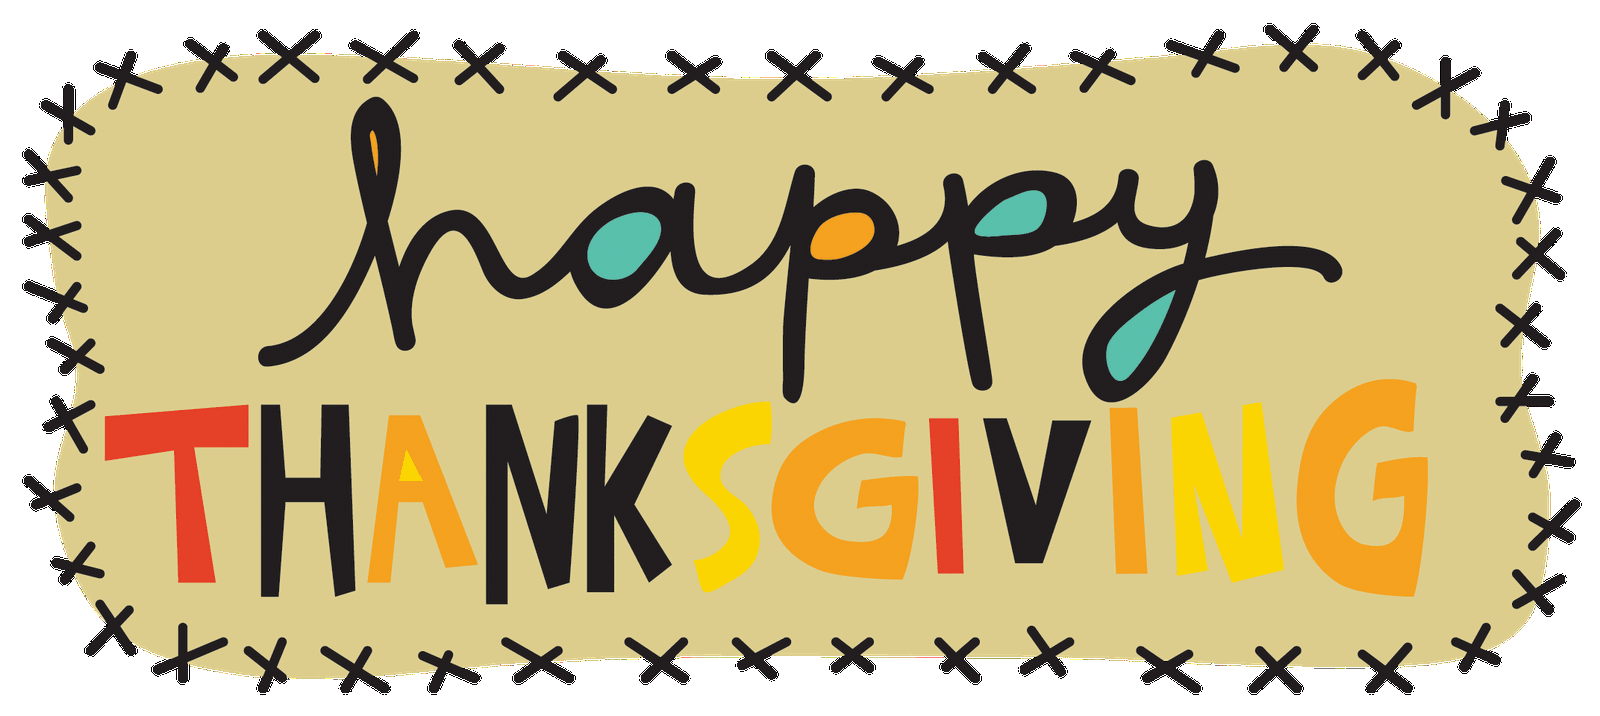 Happy thanksgiving clipart blessed. Pretty jpg stock rr